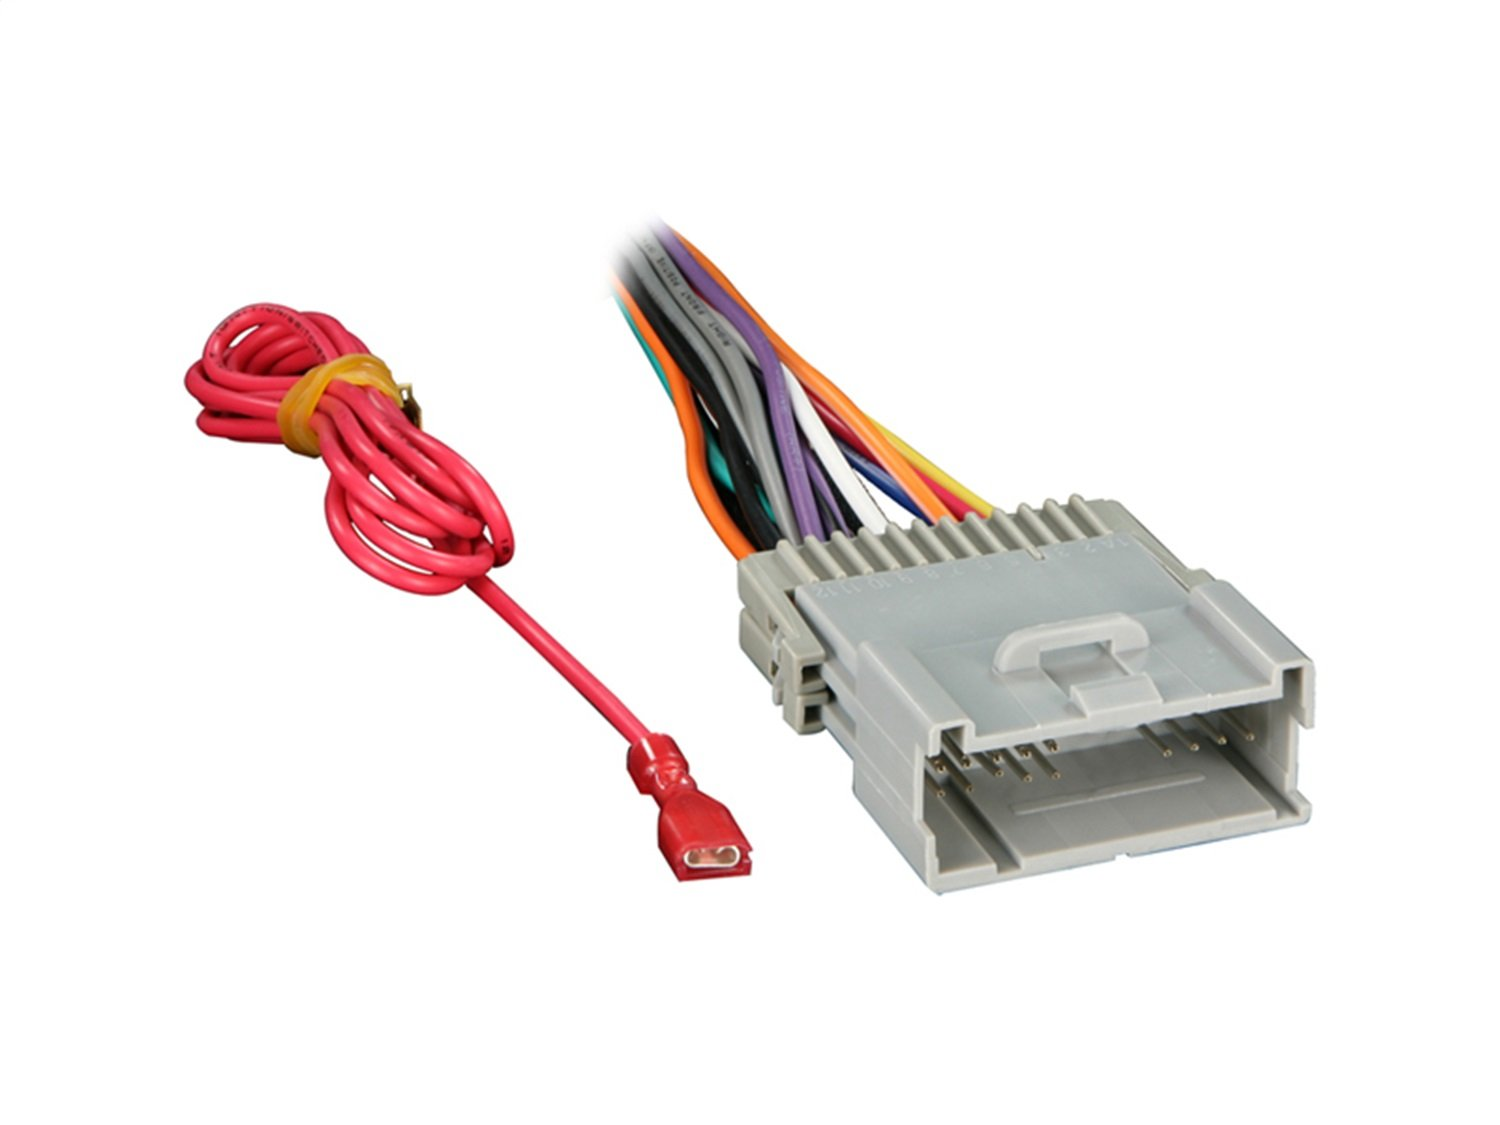 amazon com metra 70 2003 radio wiring harness for gm 98 08 harness rh amazon com 2003 gmc sierra radio wiring harness 2003 gmc sierra radio wiring harness